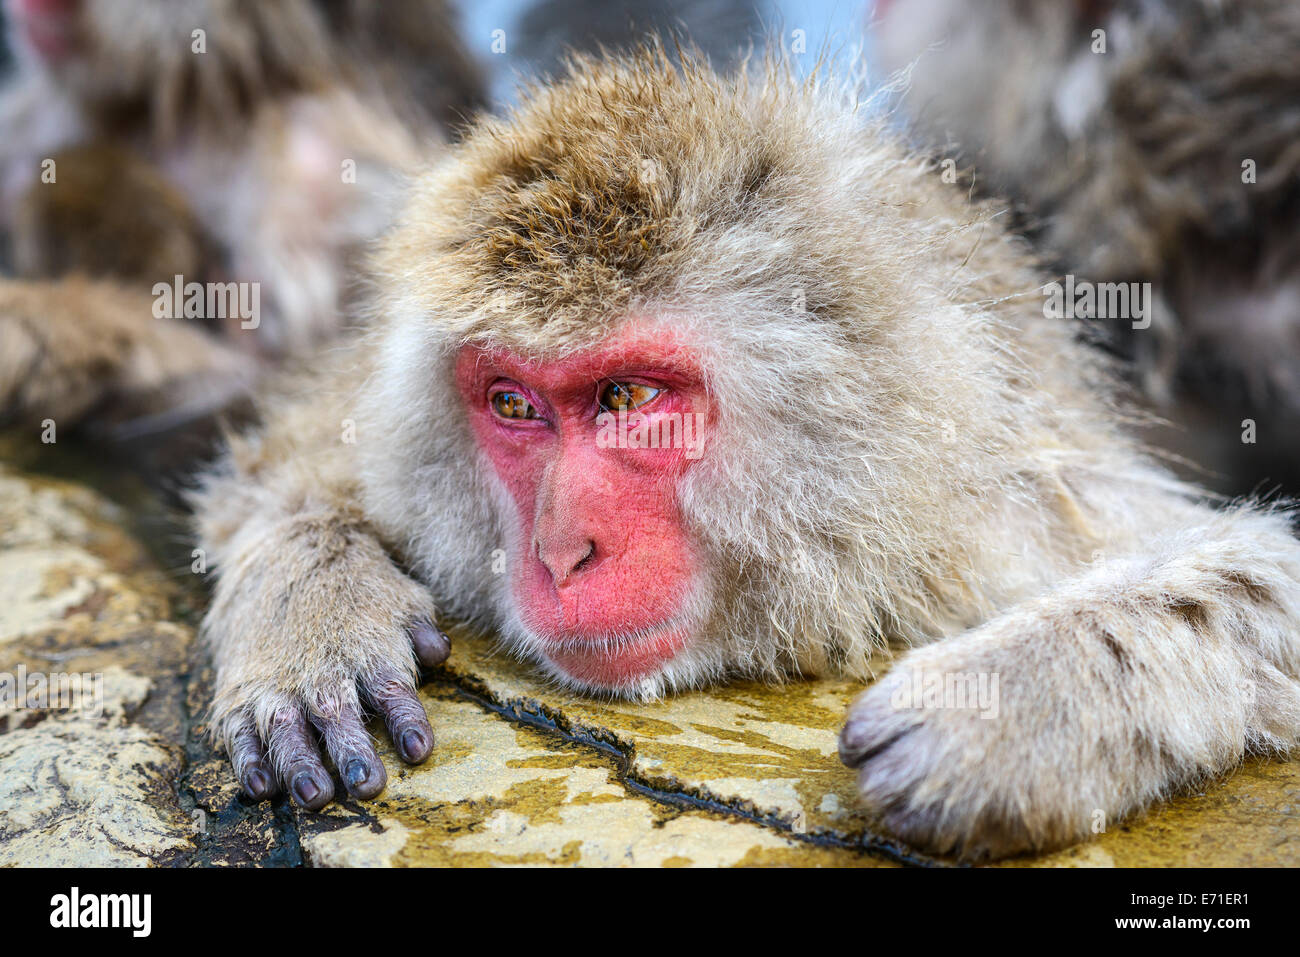 Macaque baths in hot springs in Nagano, Japan. - Stock Image